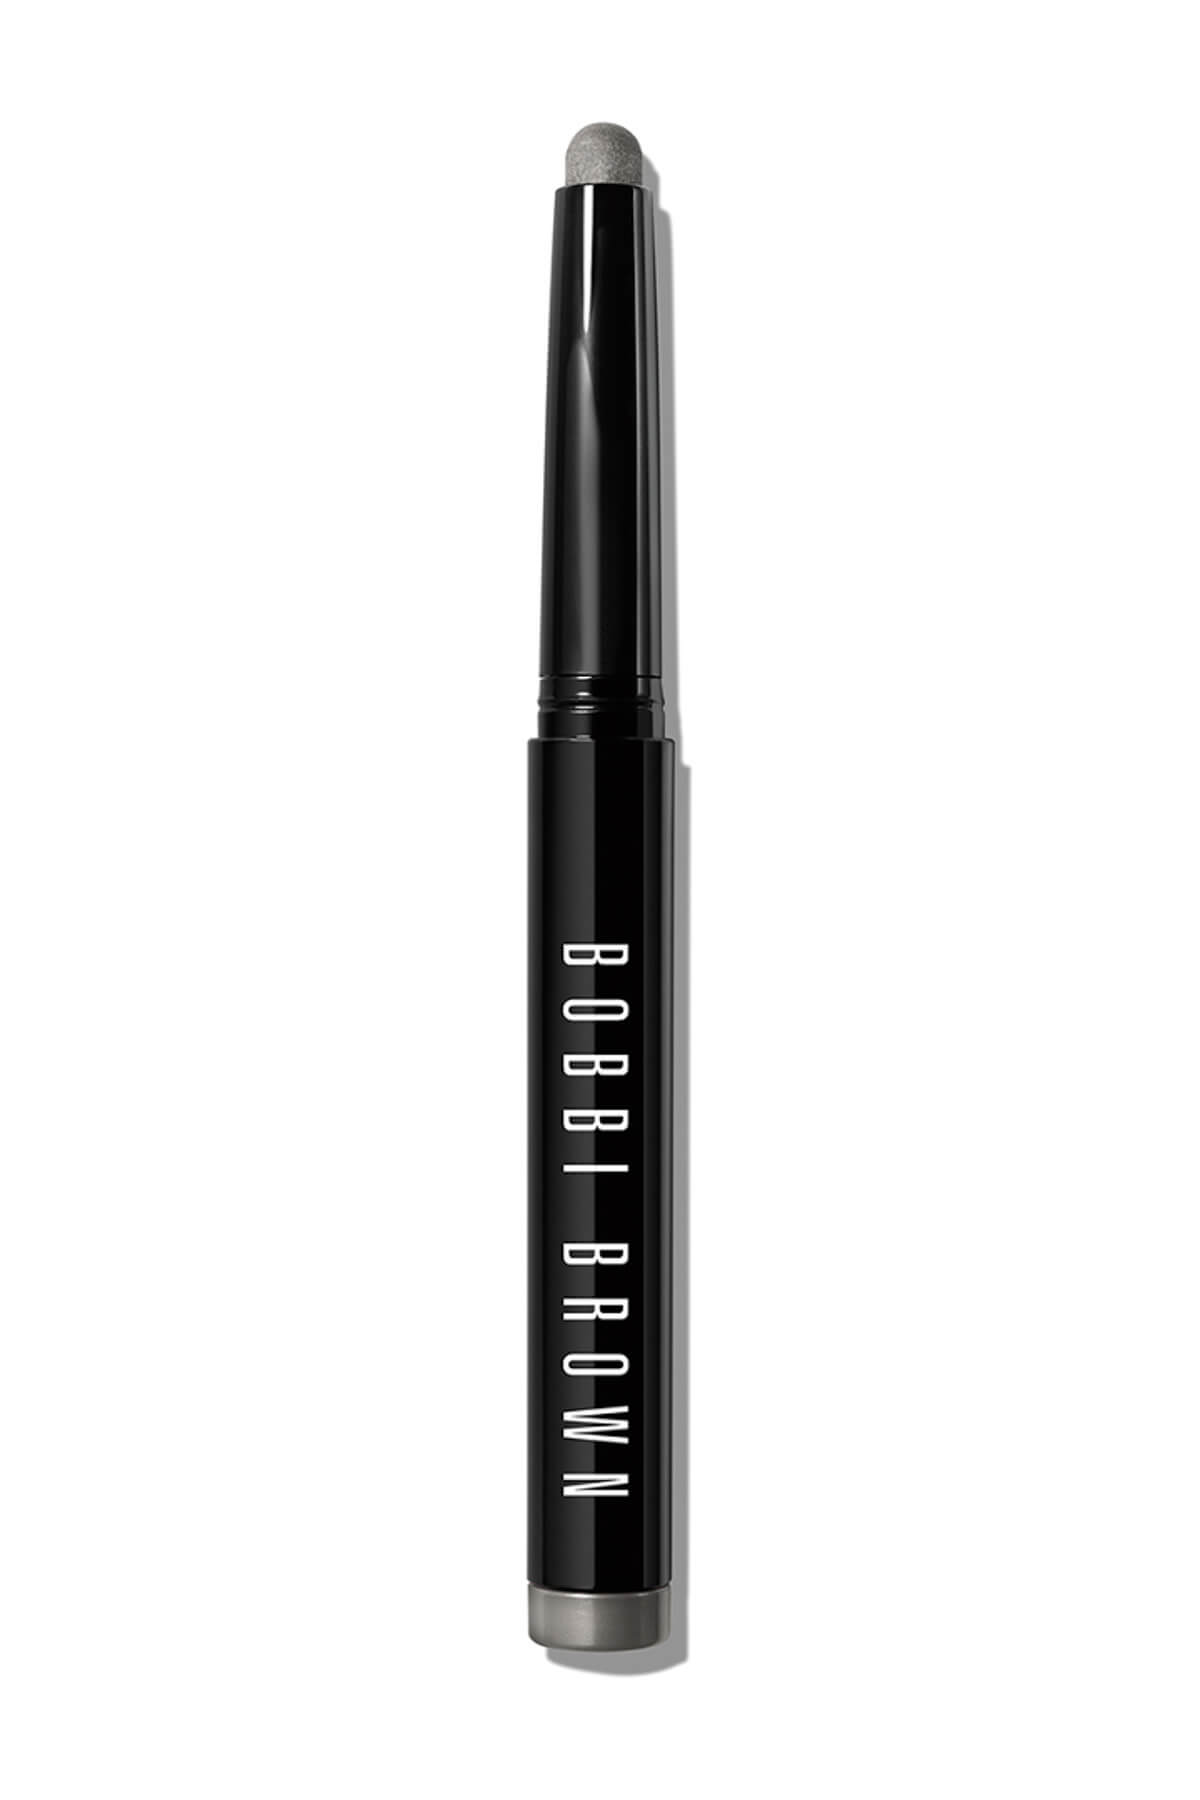 Bobbı Brown Stick Göz Farı – Long Wear Cream Shadow 716170109541 – 102.21 TL